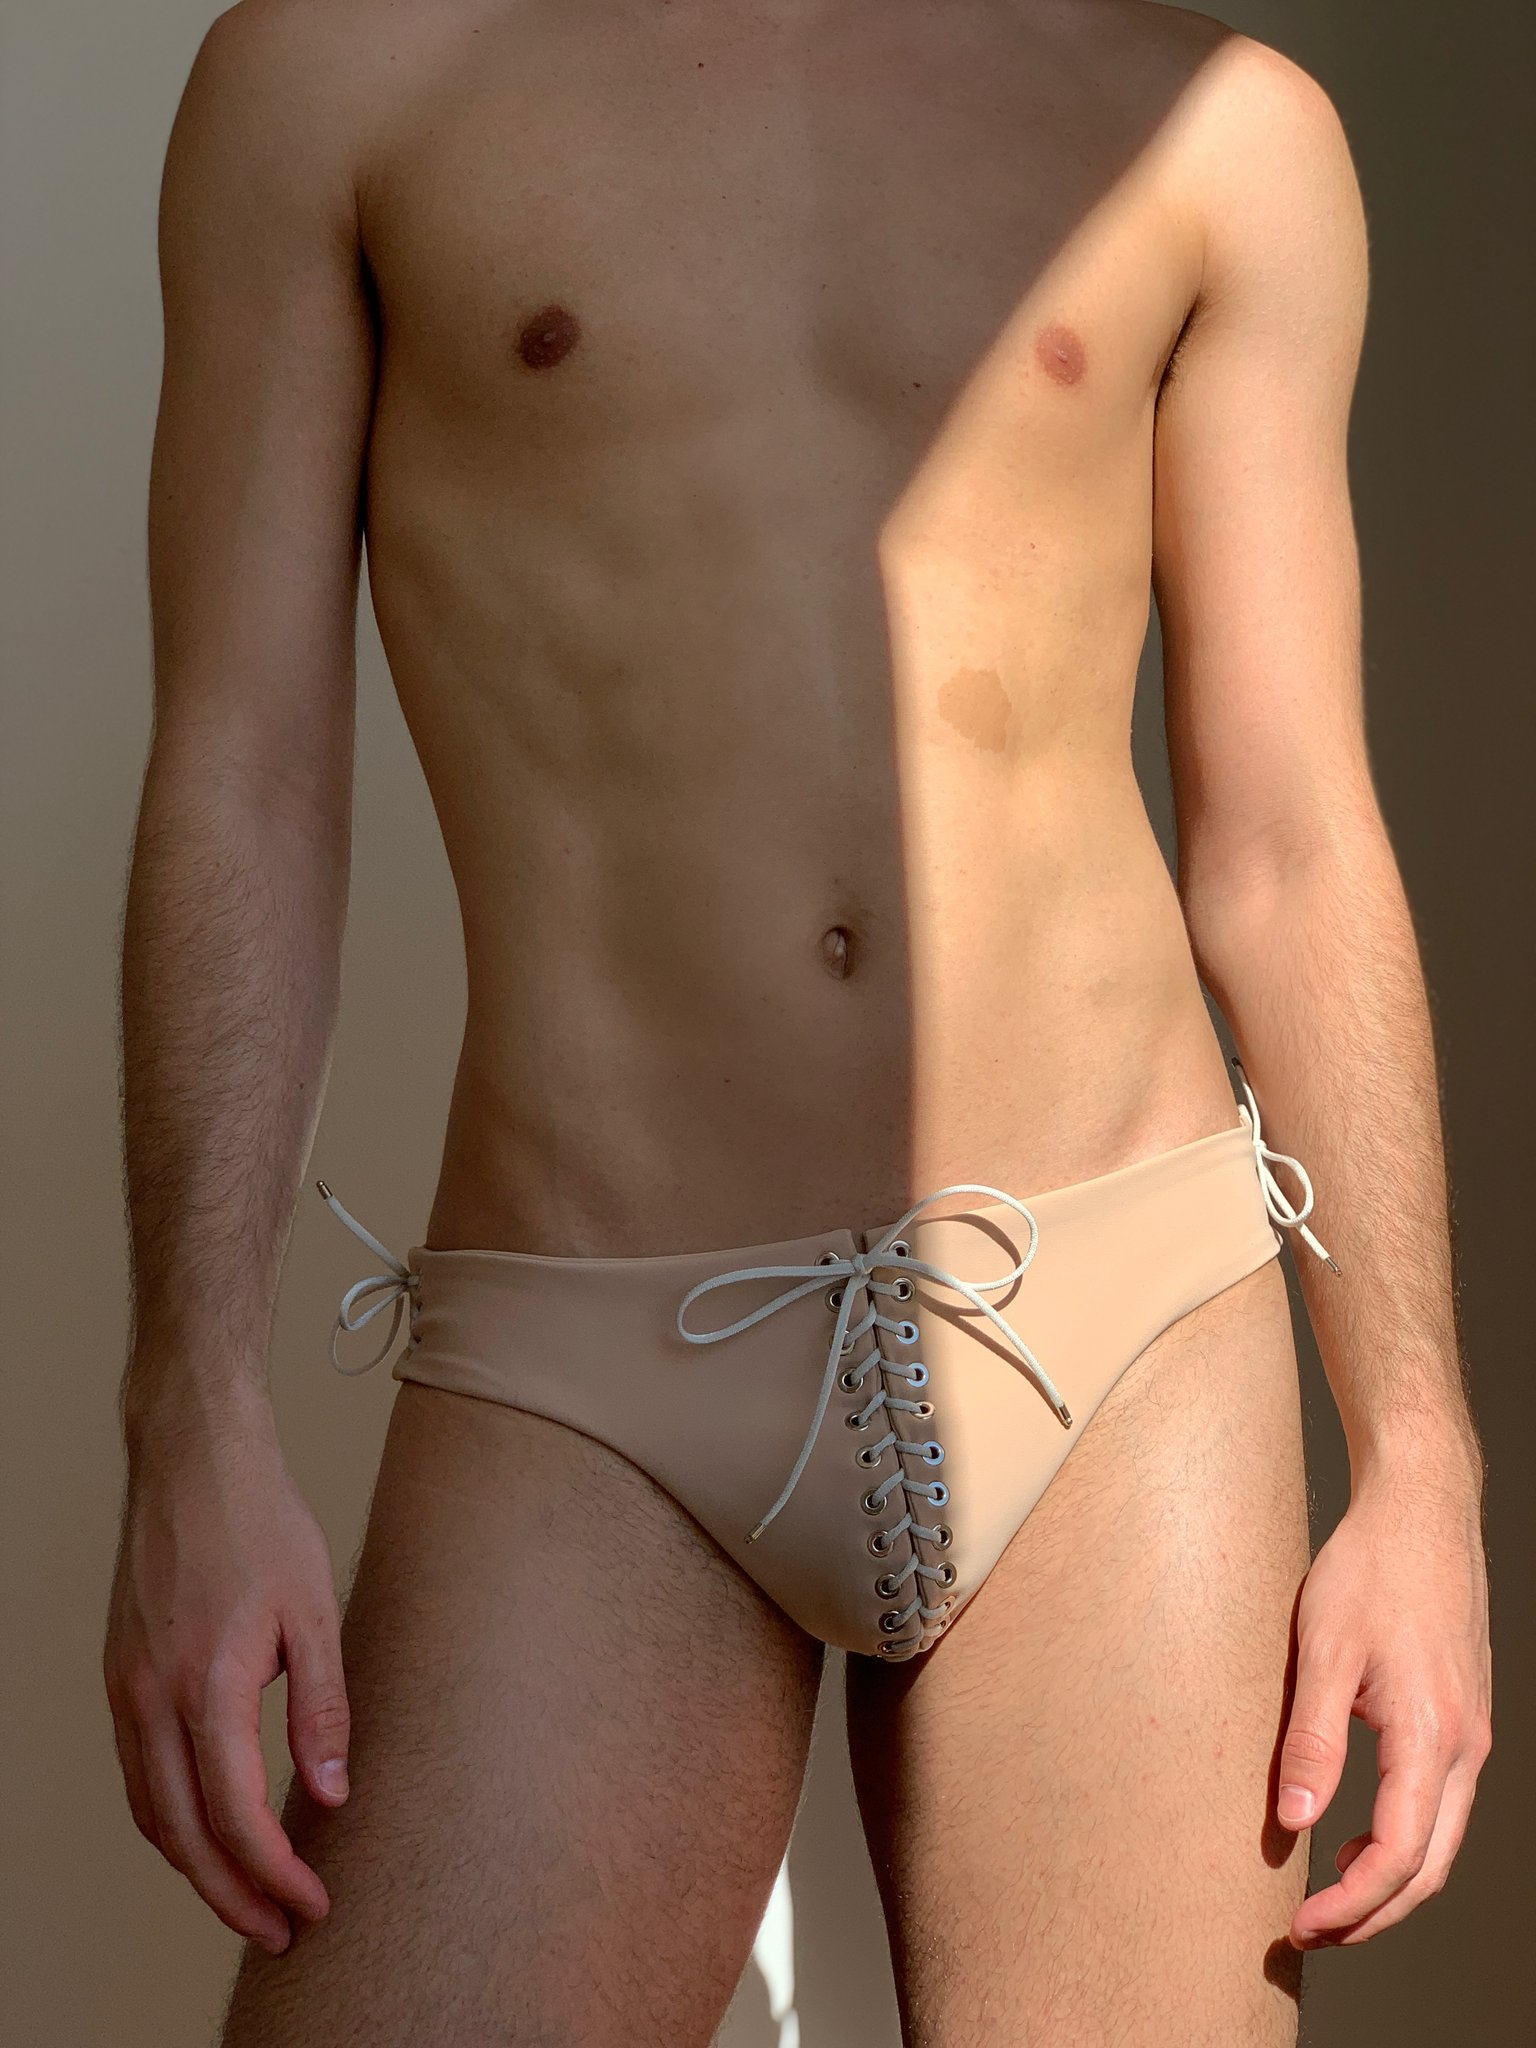 Ludovic de Saint Sernin launches his first swimwear collection - Vanity teen